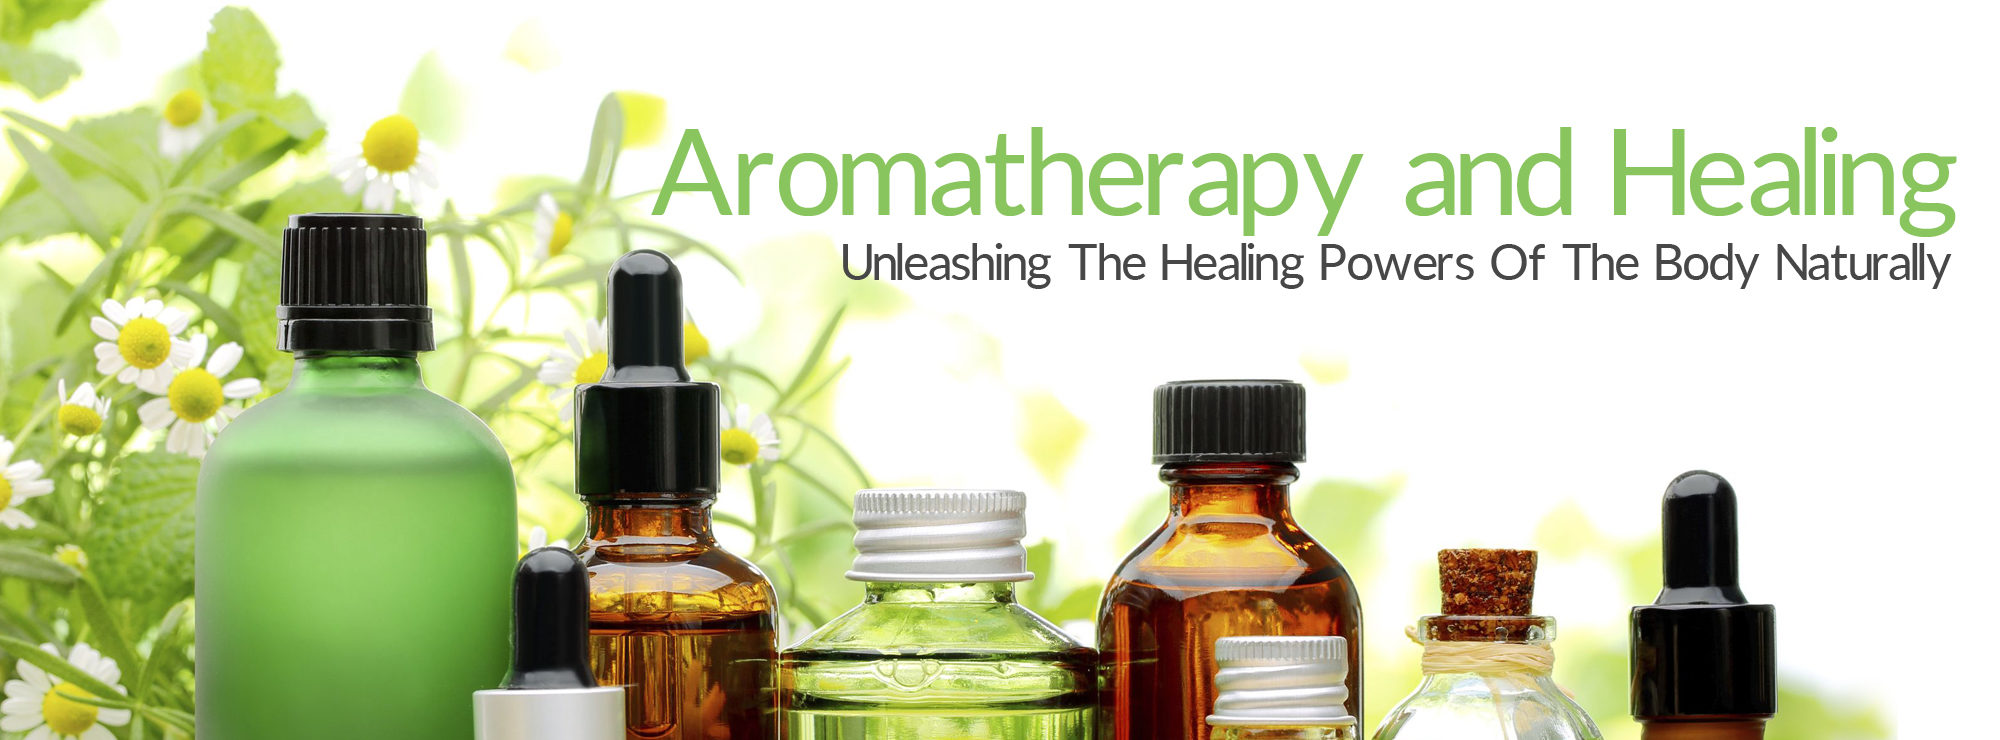 Aromatherapy And Healing